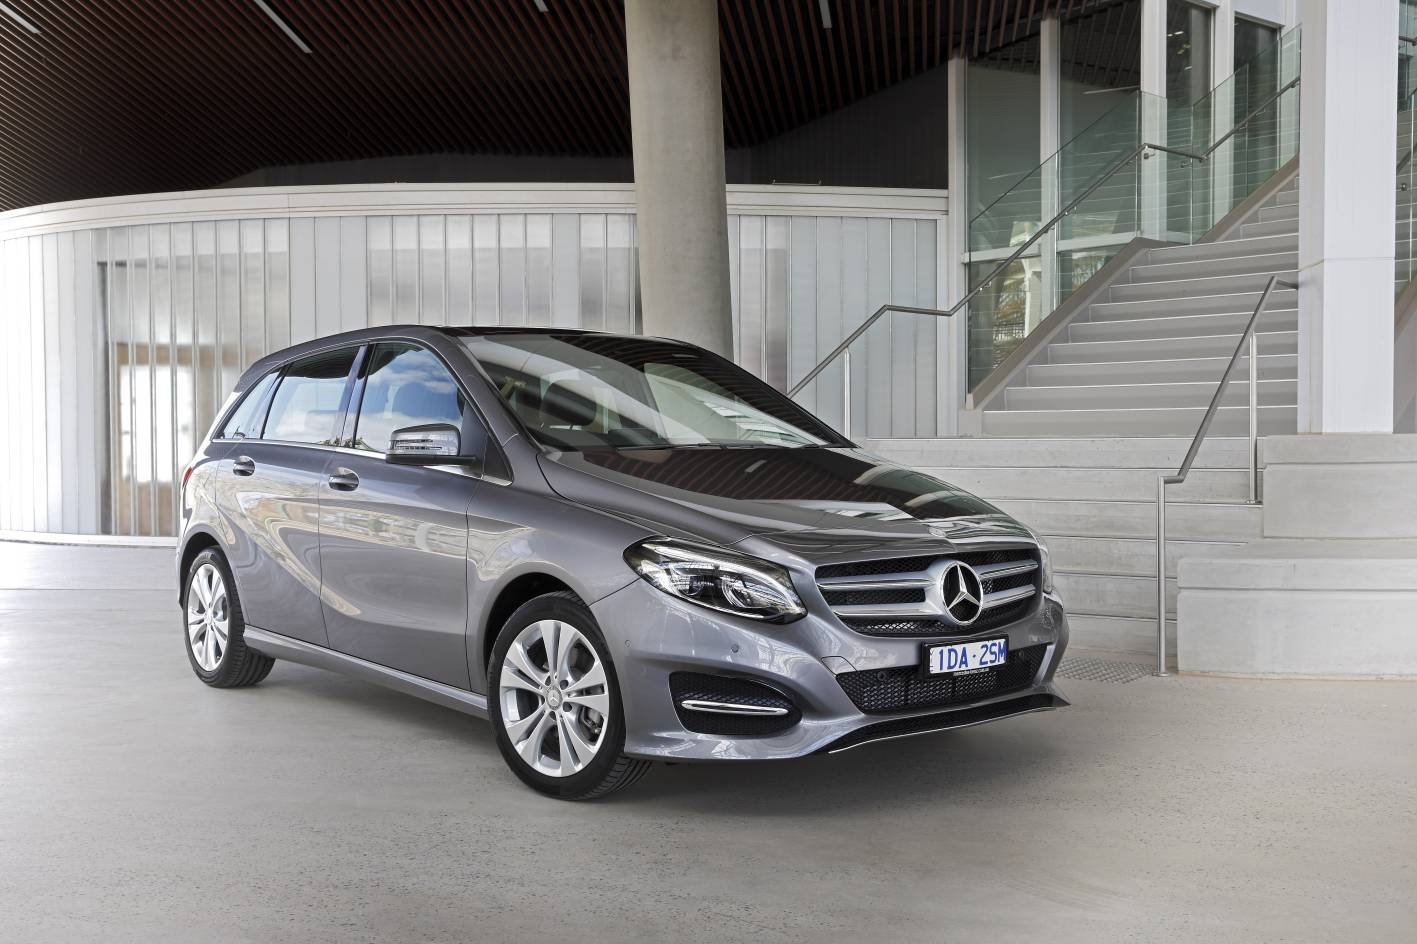 Mercedes cars news facelifted 2015 b class pricing and for Mercedes benz b class specifications